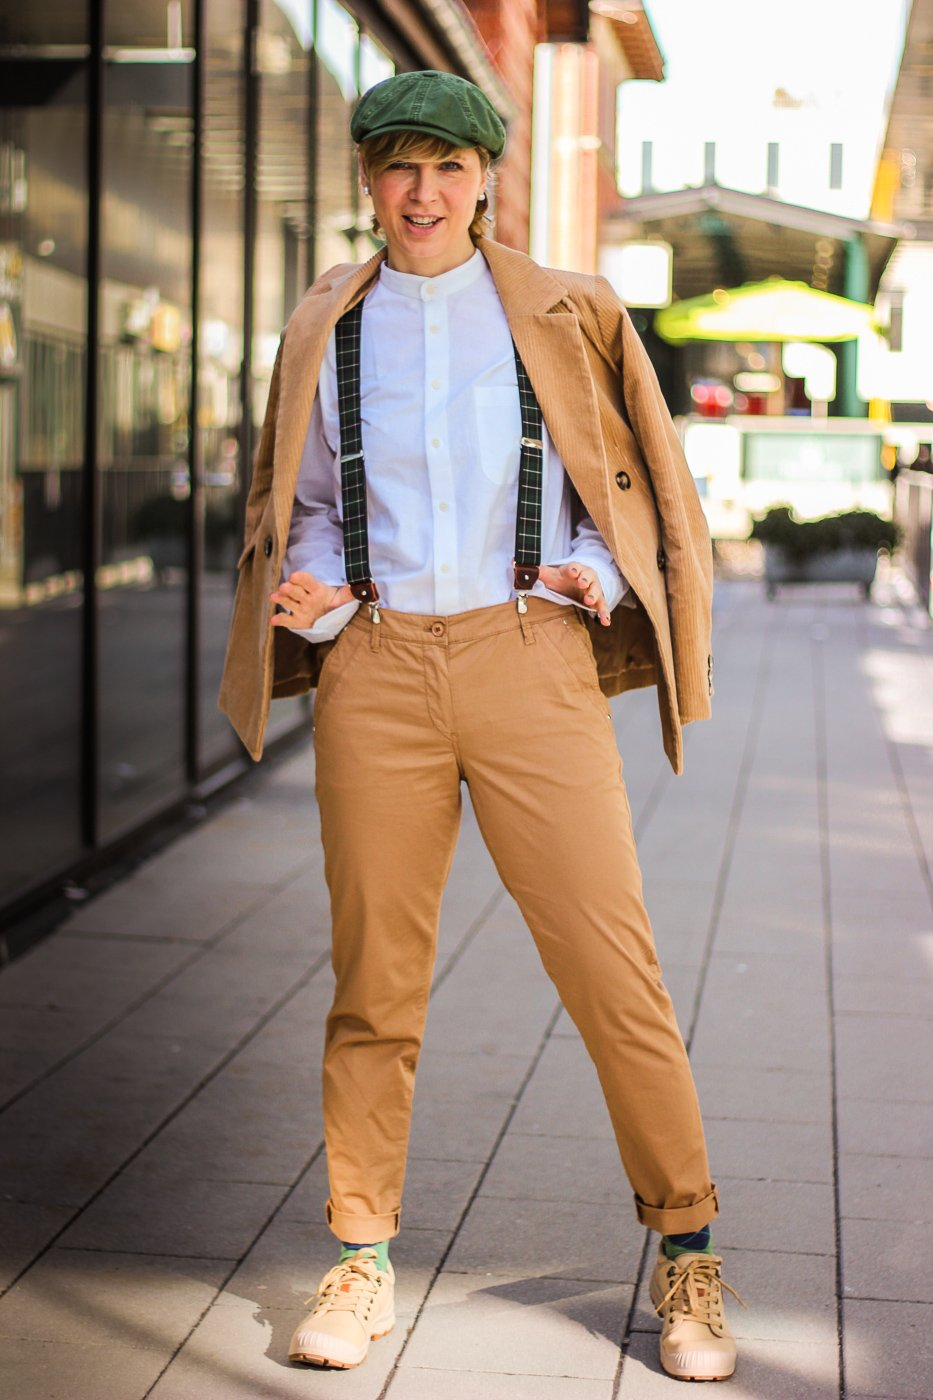 conny doll lifestyle: Dandy Style mit Cordblazer, Outfitidee